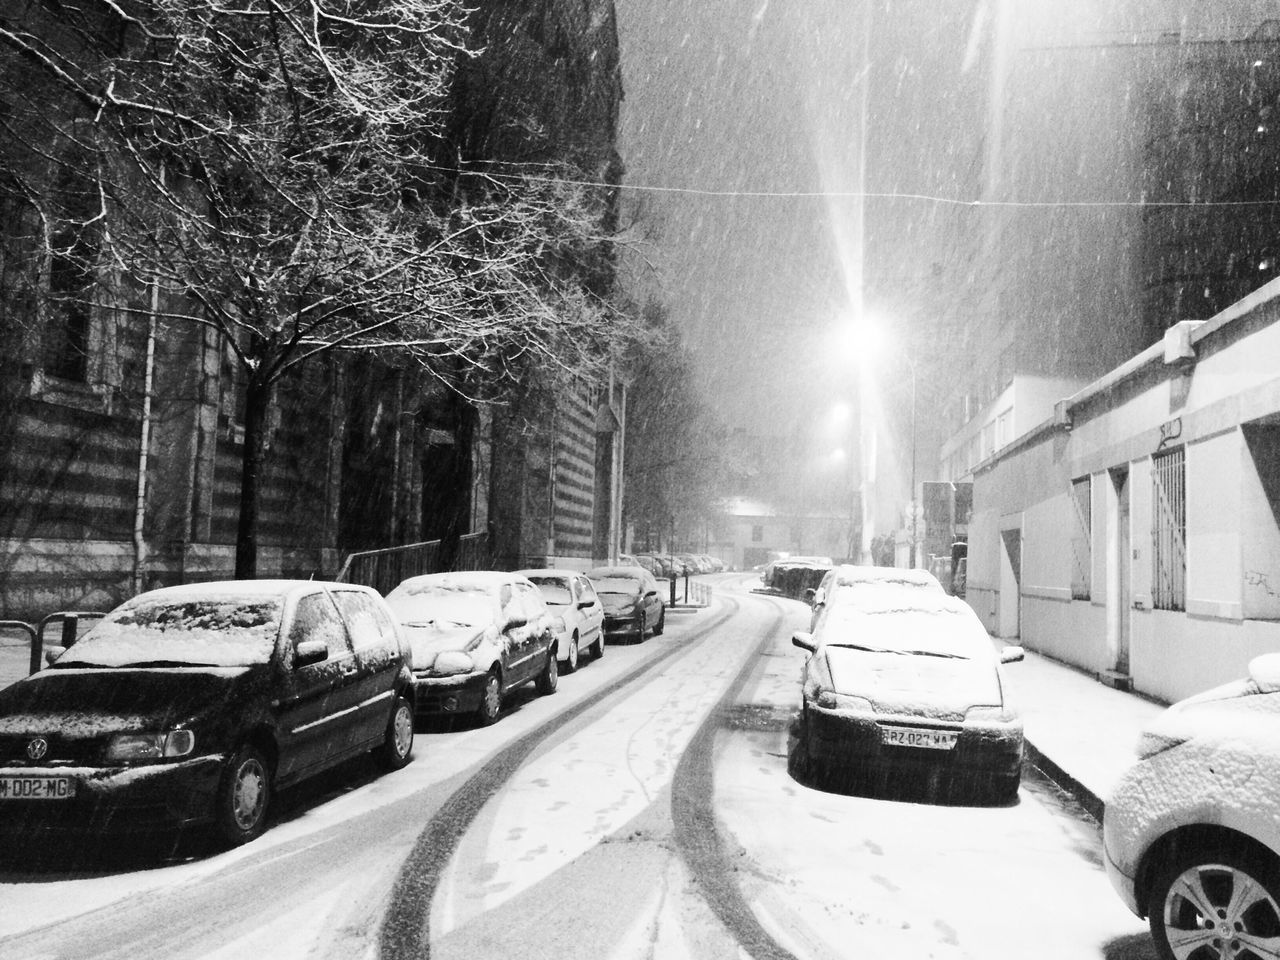 car, land vehicle, transportation, mode of transport, snow, winter, cold temperature, street, stationary, building exterior, architecture, outdoors, built structure, tree, road, no people, day, nature, city